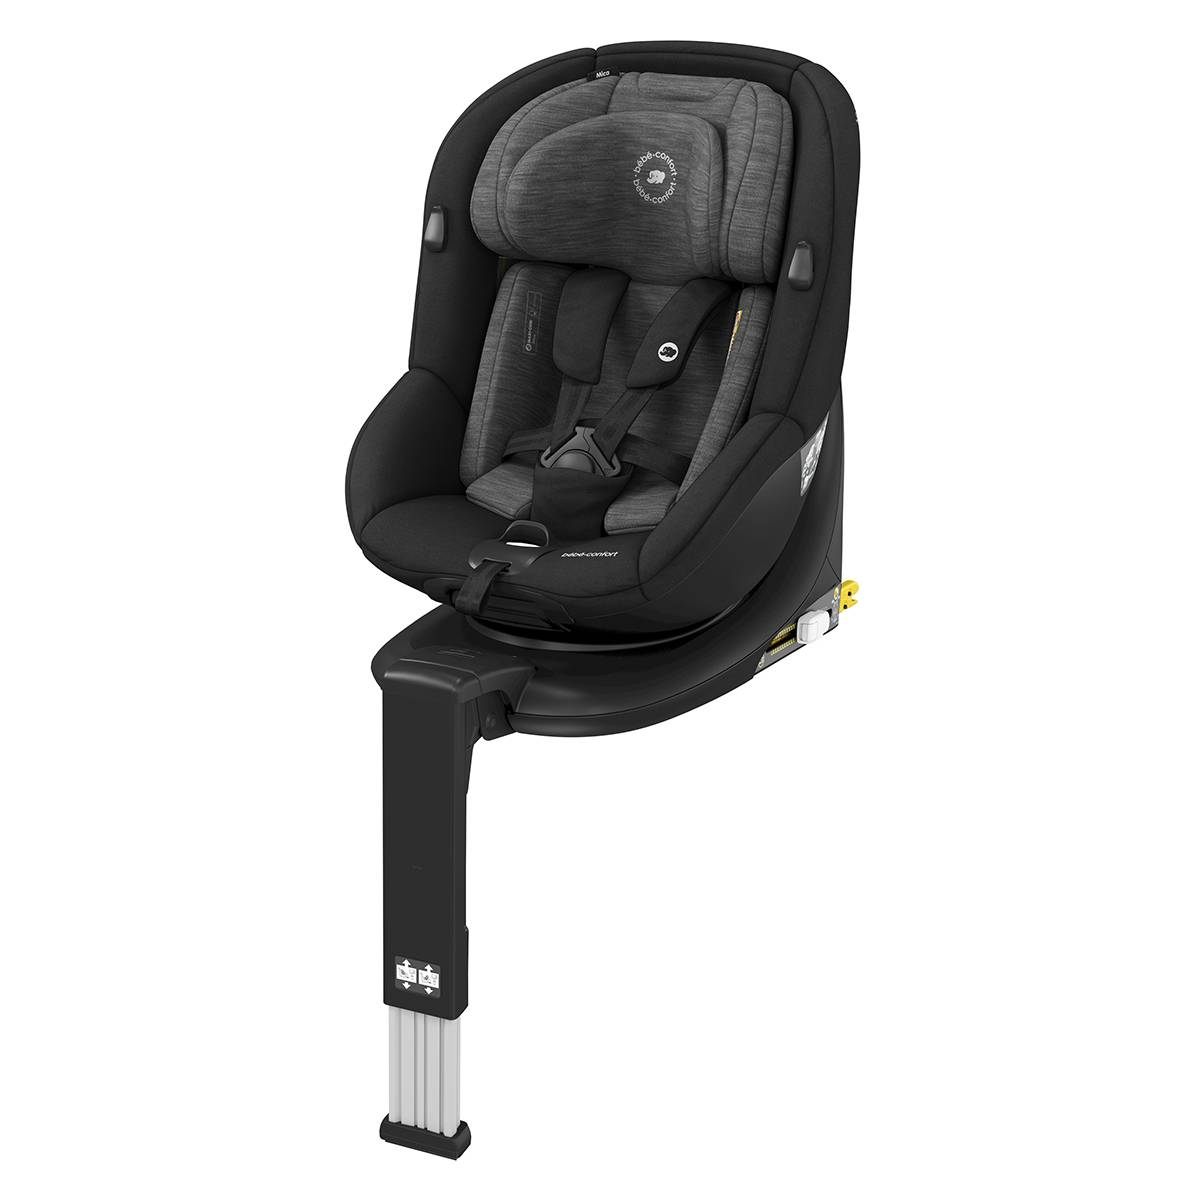 Bébé Confort Siège Auto Mica i-Size Groupe 0+/1 - Authentic Black